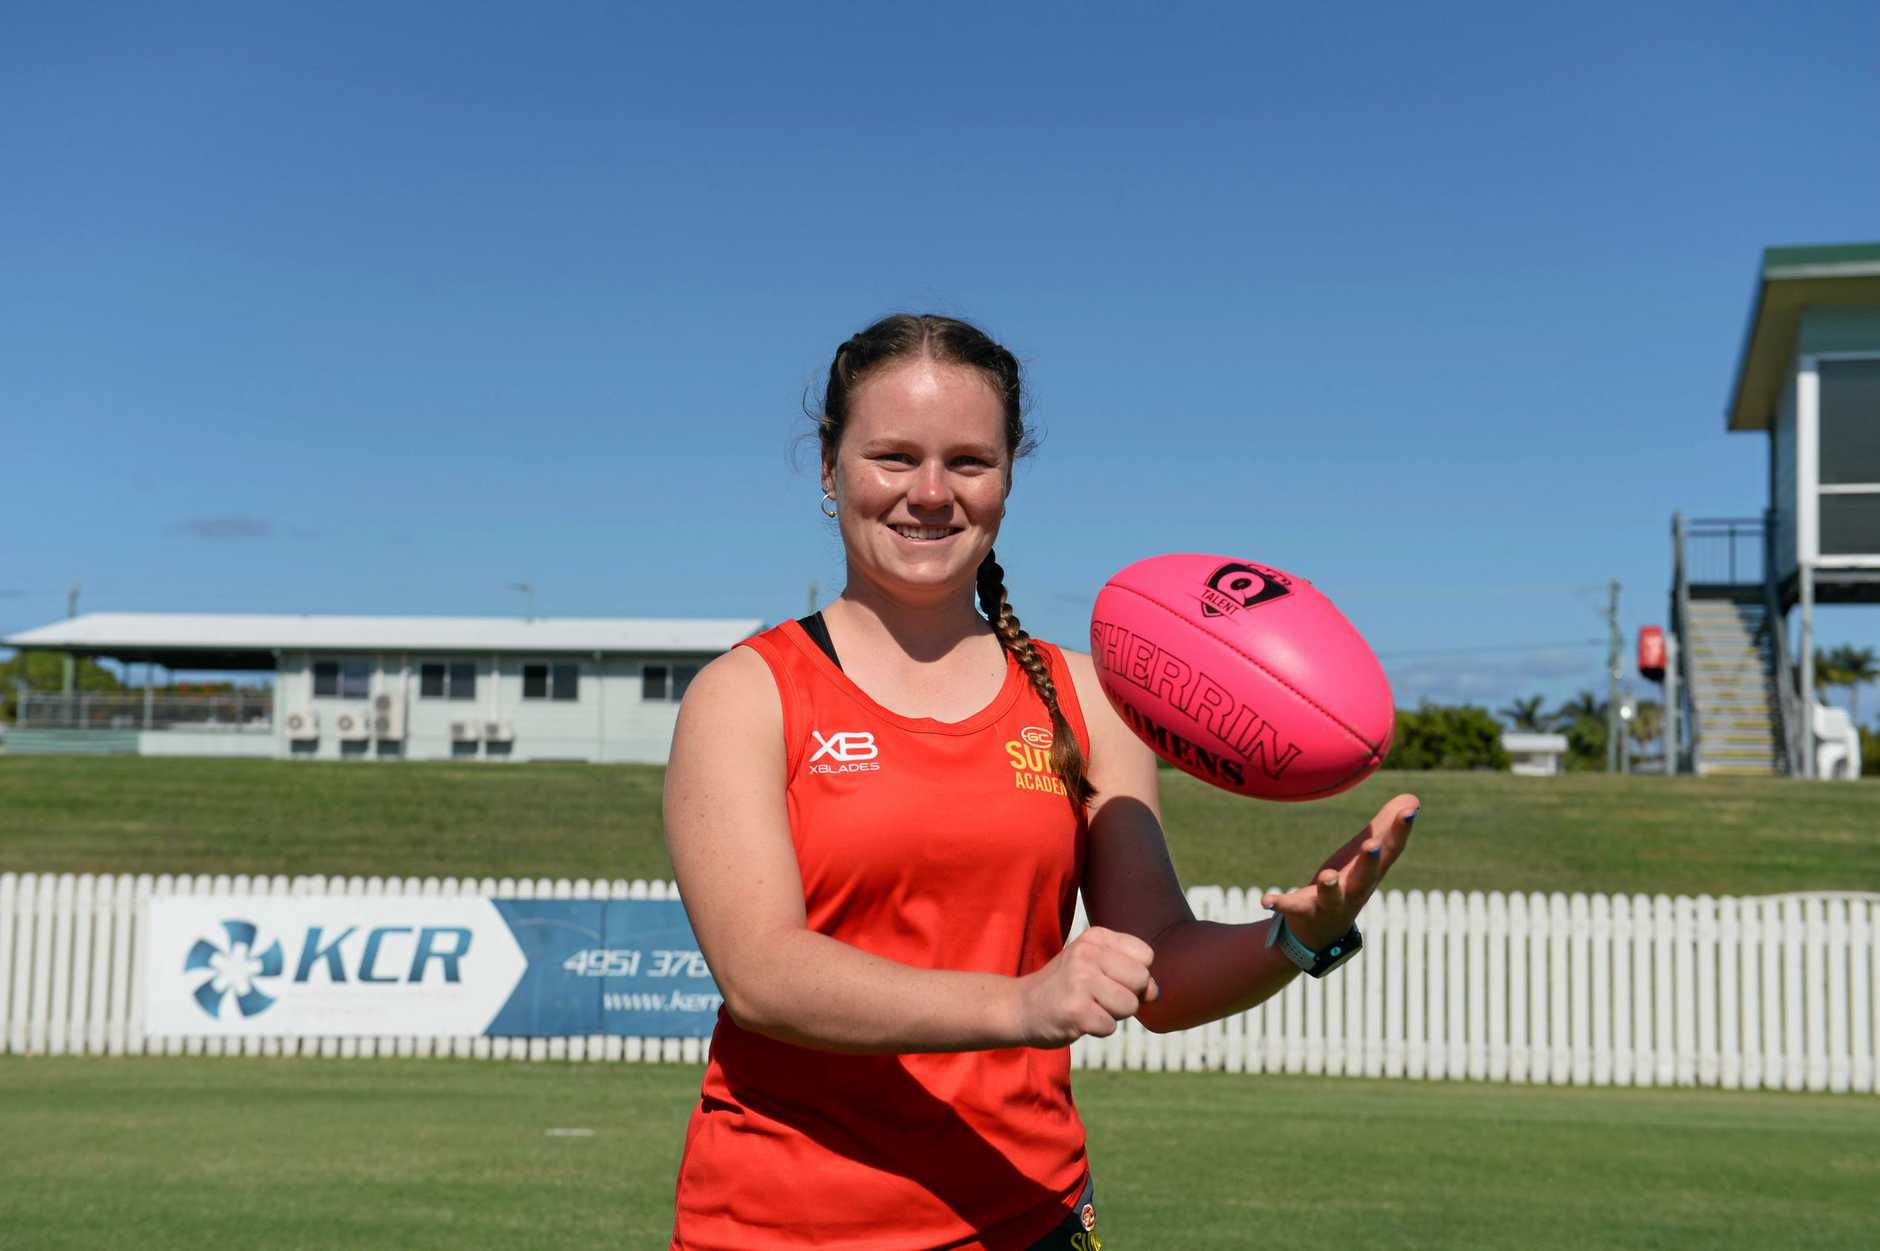 Tanacha Saunders was one of four Mackay girls selected into the selected in the 2019 Under 18 Gold Coast Suns Academy Female Squad